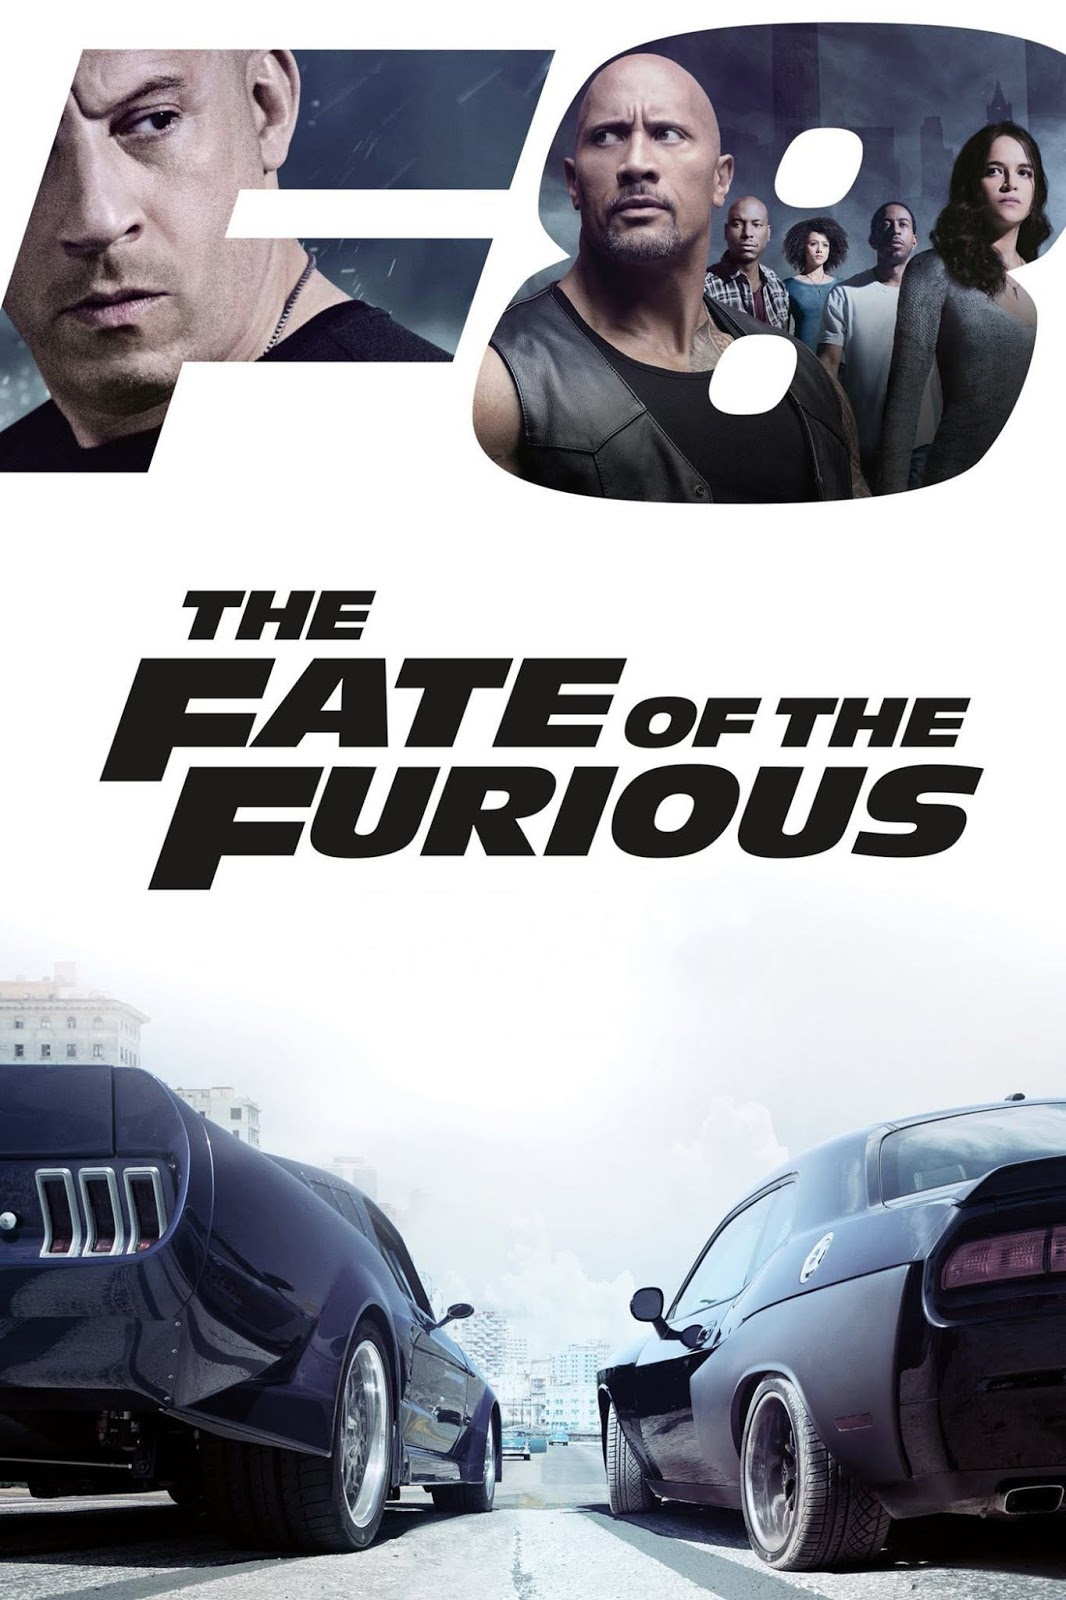 THE FATE OF THE FURIOUS 8 (2017) TAMIL DUBBED HD